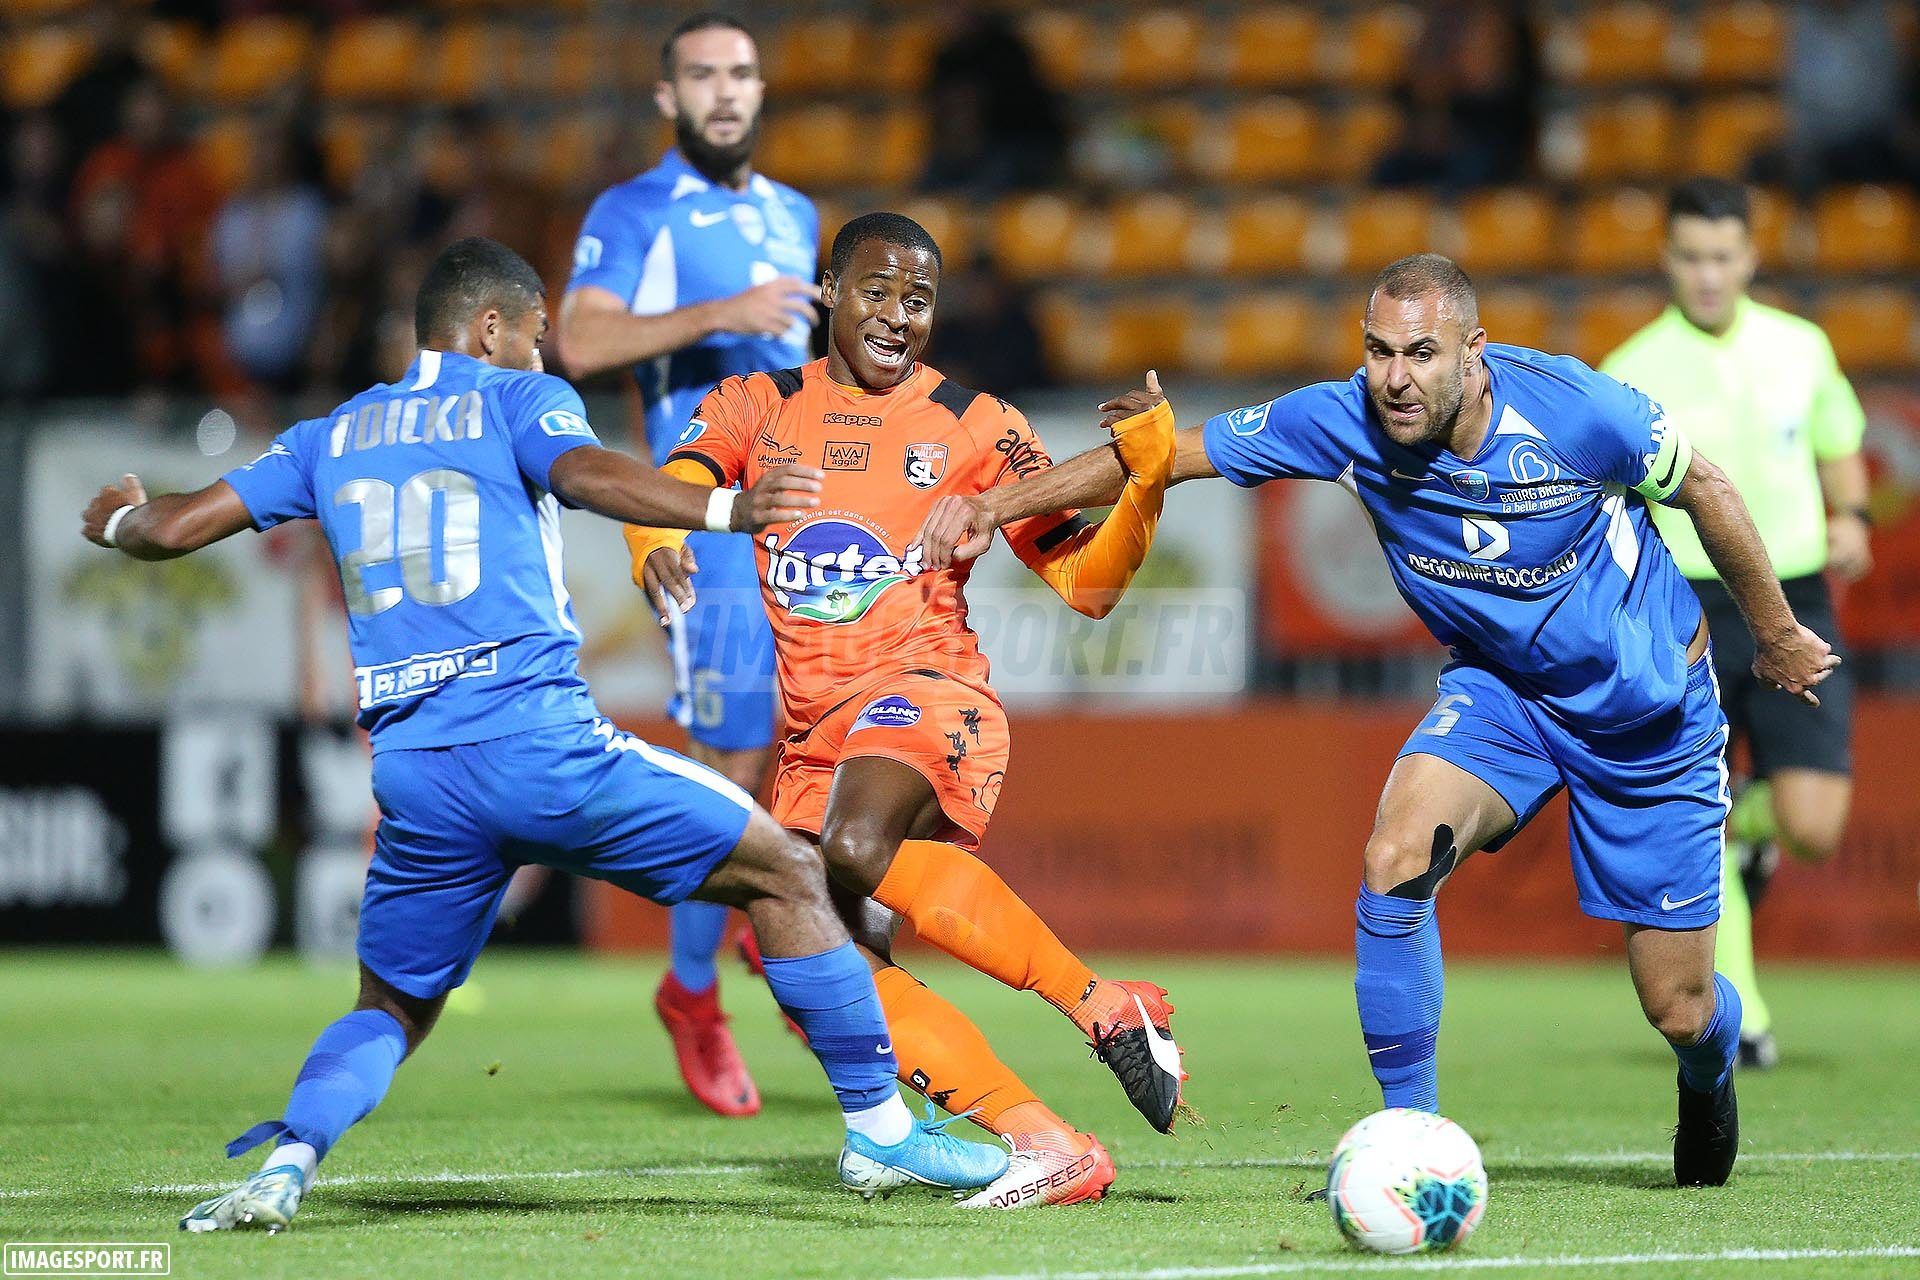 national-stade-lavallois-fbbp01-2019-2020_11